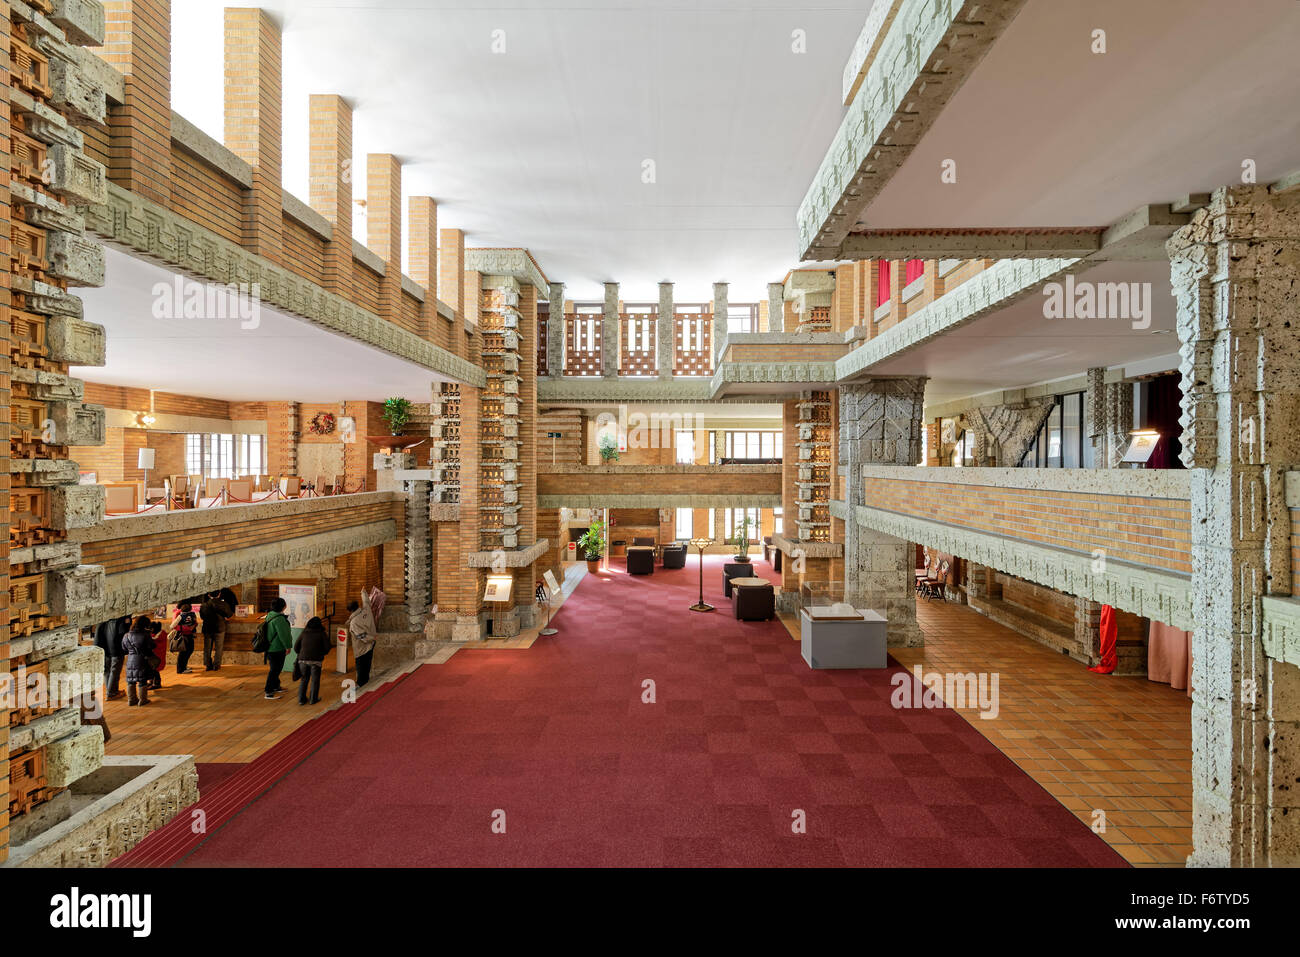 lobby of frank lloyd wright 39 s imperial hotel in japan stock photo royalty free image 90288161. Black Bedroom Furniture Sets. Home Design Ideas